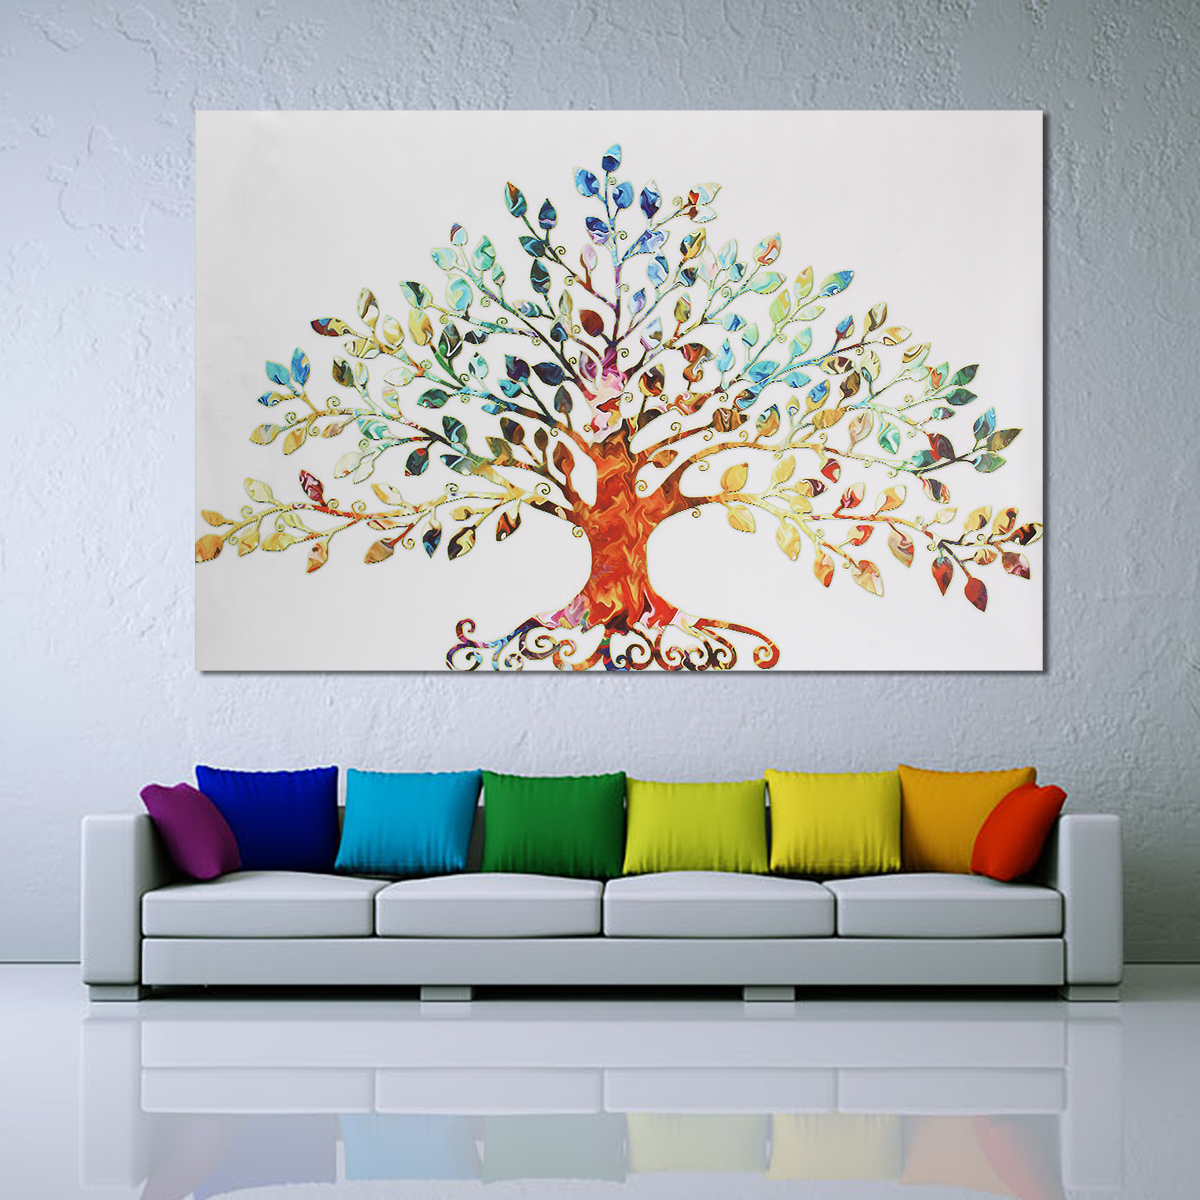 75x50cm picture abstract colorful leafy tree unframed for Paintings for house decoration